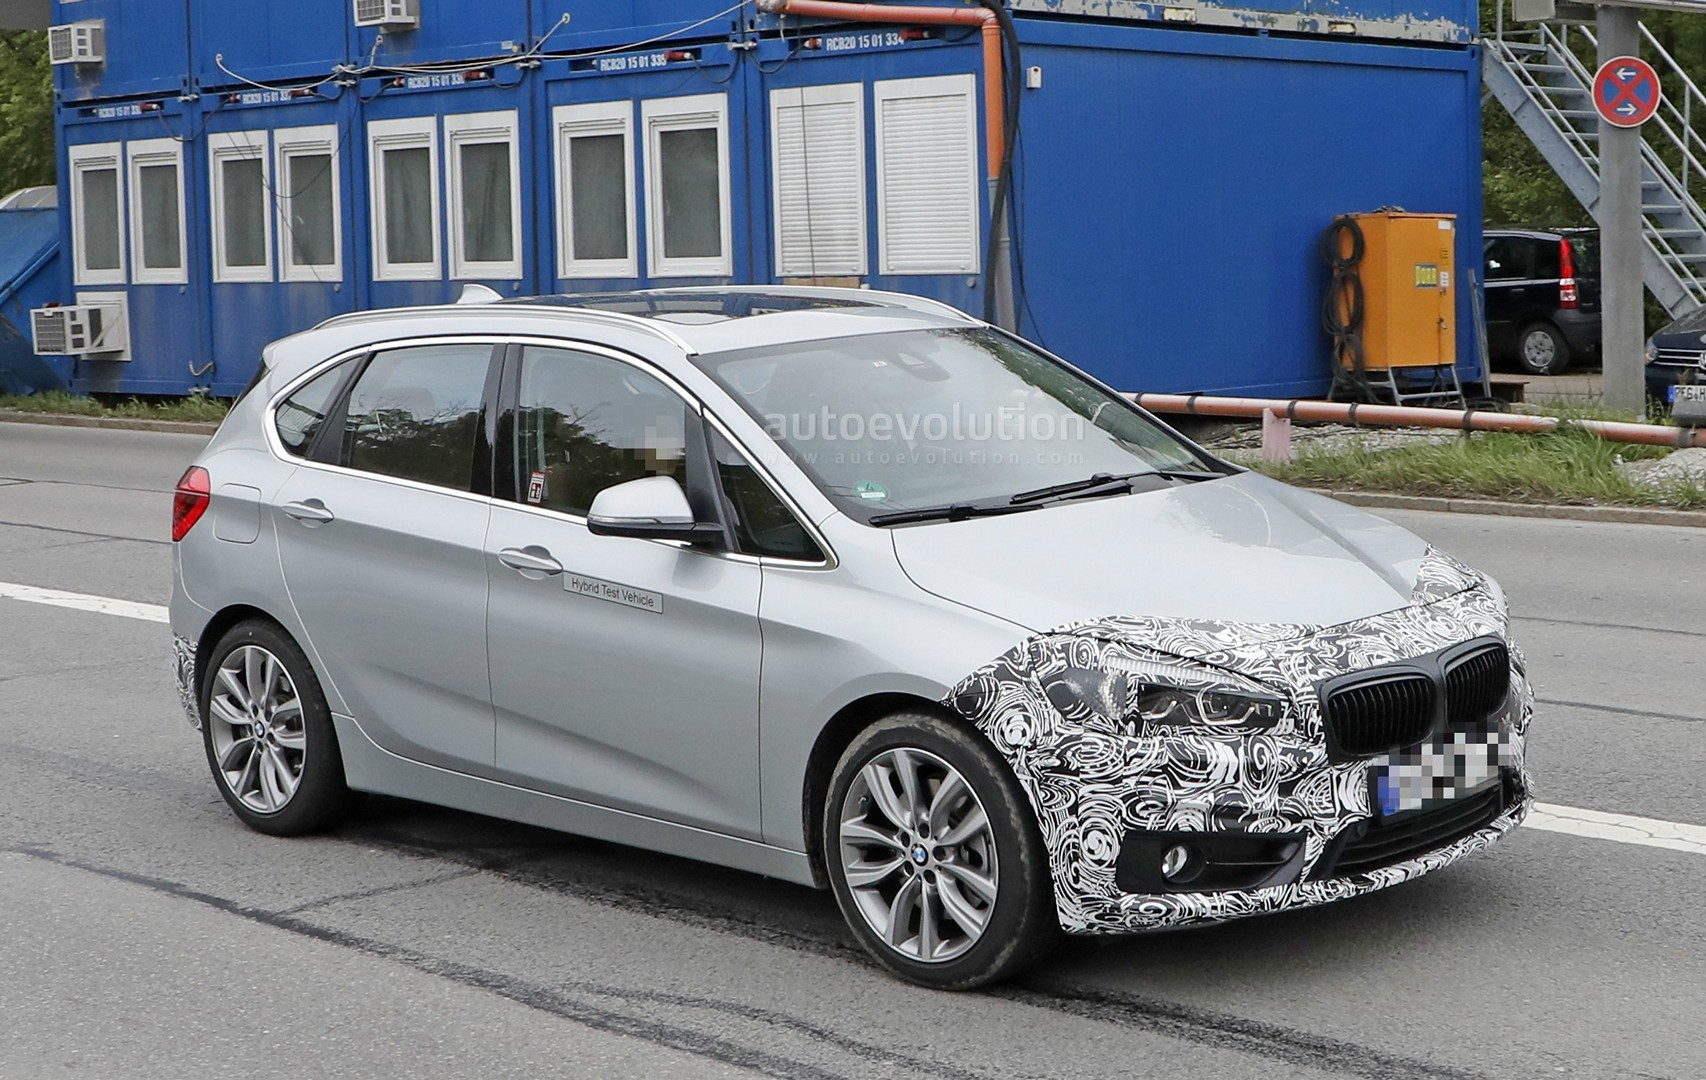 2018 - [BMW] Série 2 Active Tourer restylé  2018-bmw-2-series-active-tourer-spied-with-cool-new-headlights_4